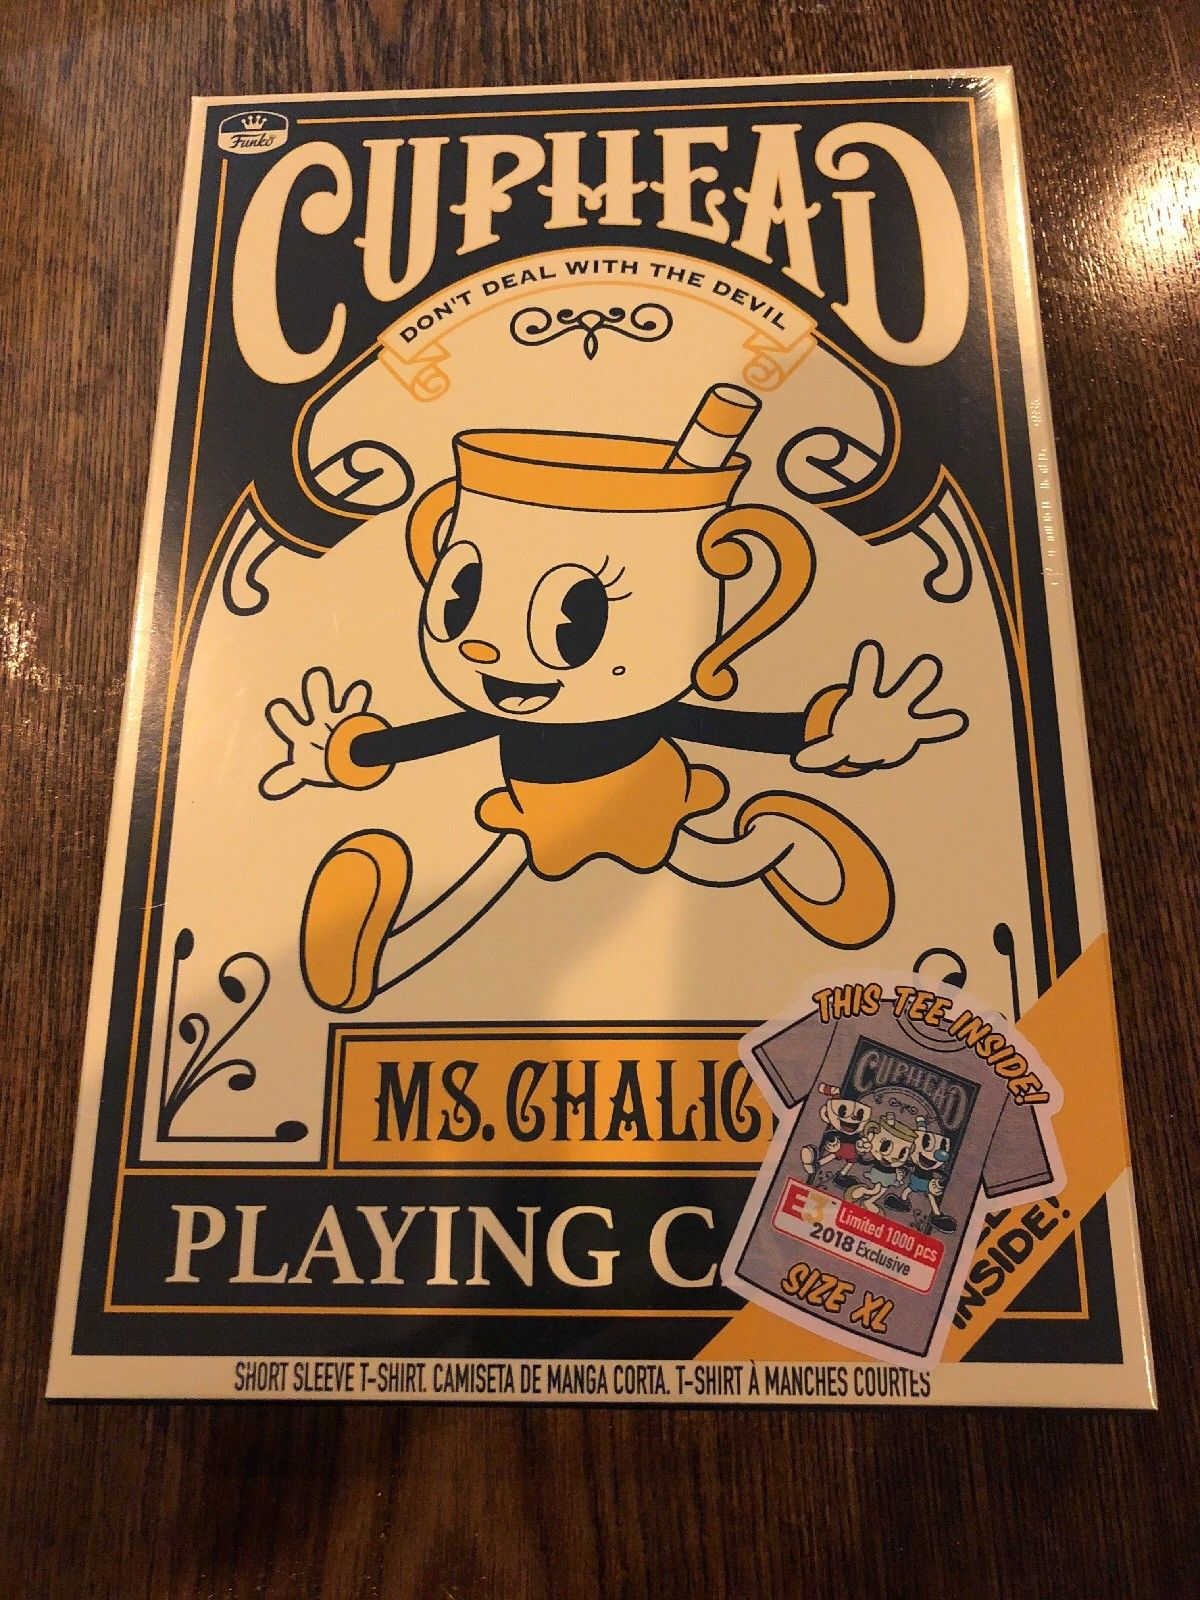 E3 2018 CUPHEAD Legendary CHALICE T-SHIRT X-LARGE FUNKO POP LIMITED EXCLUSIVE